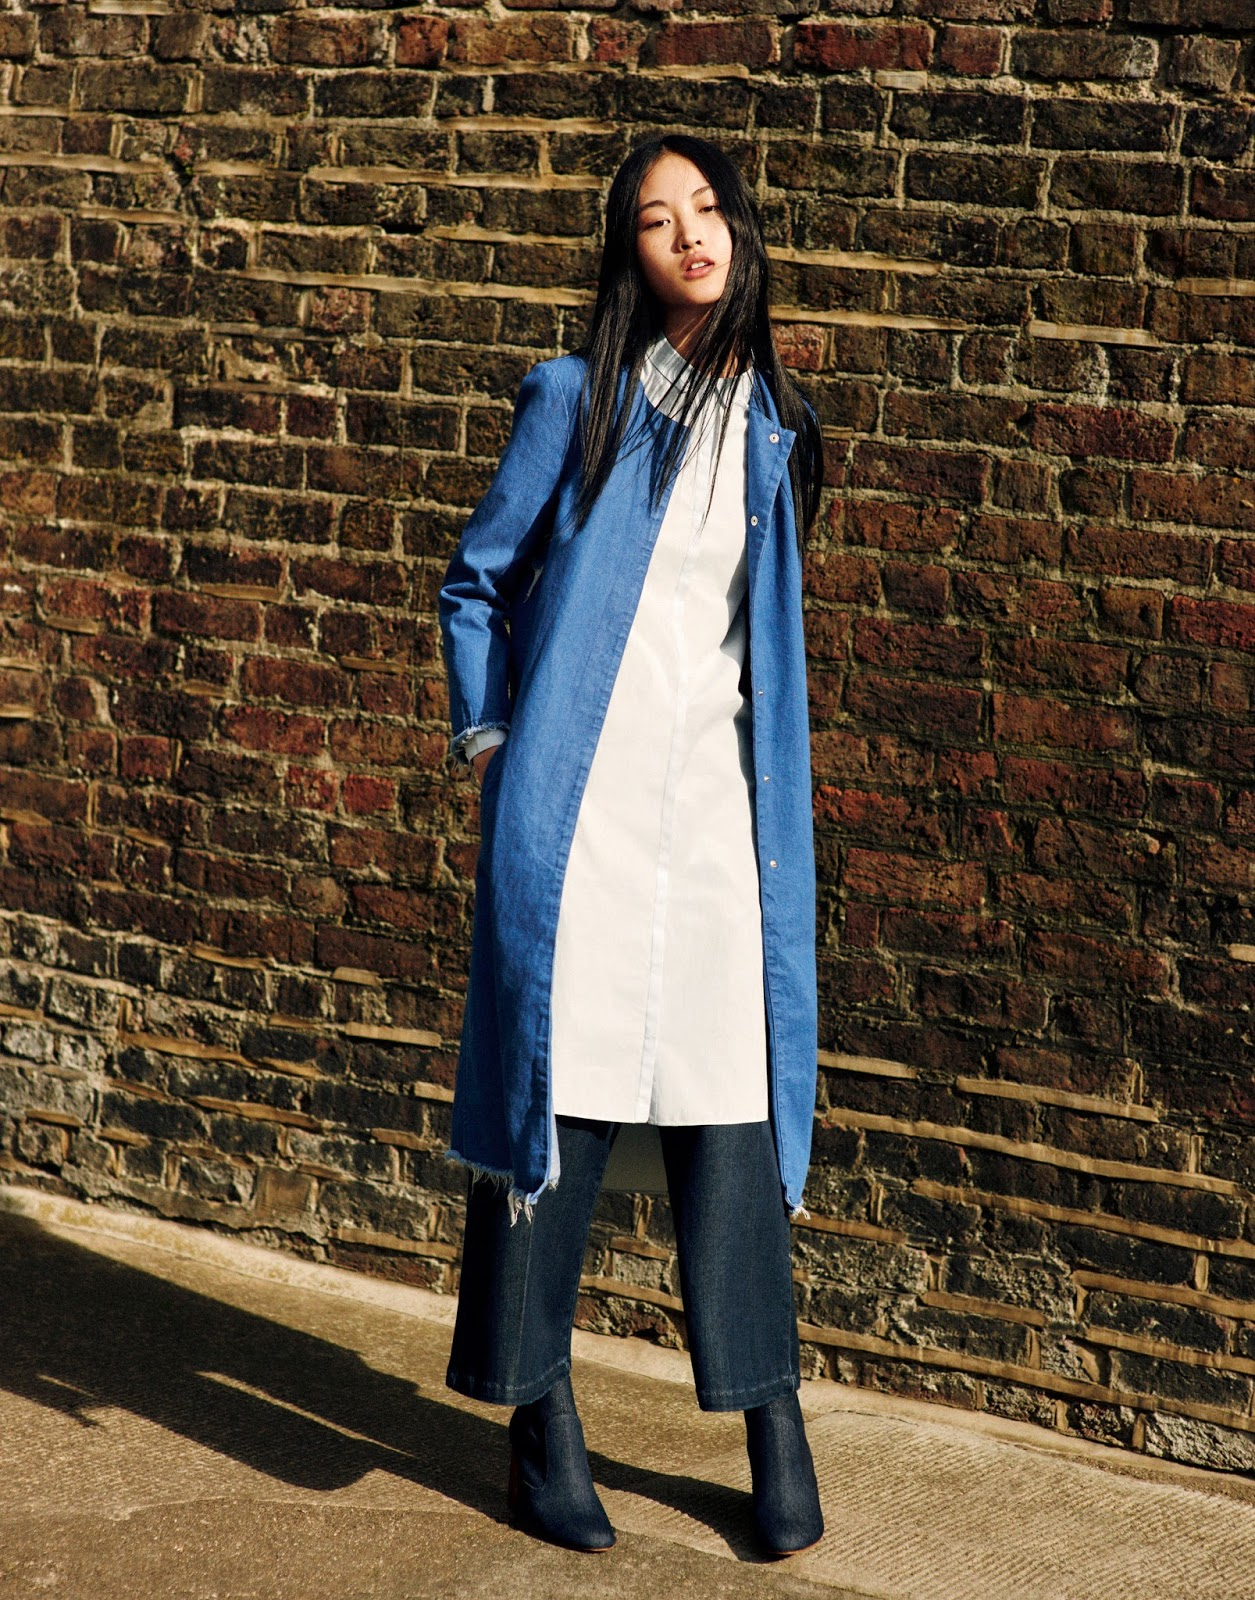 727b1e91 Jing Wen is one of the faces of Zara's new TRF campaign, shot by Matteo  Montanari.